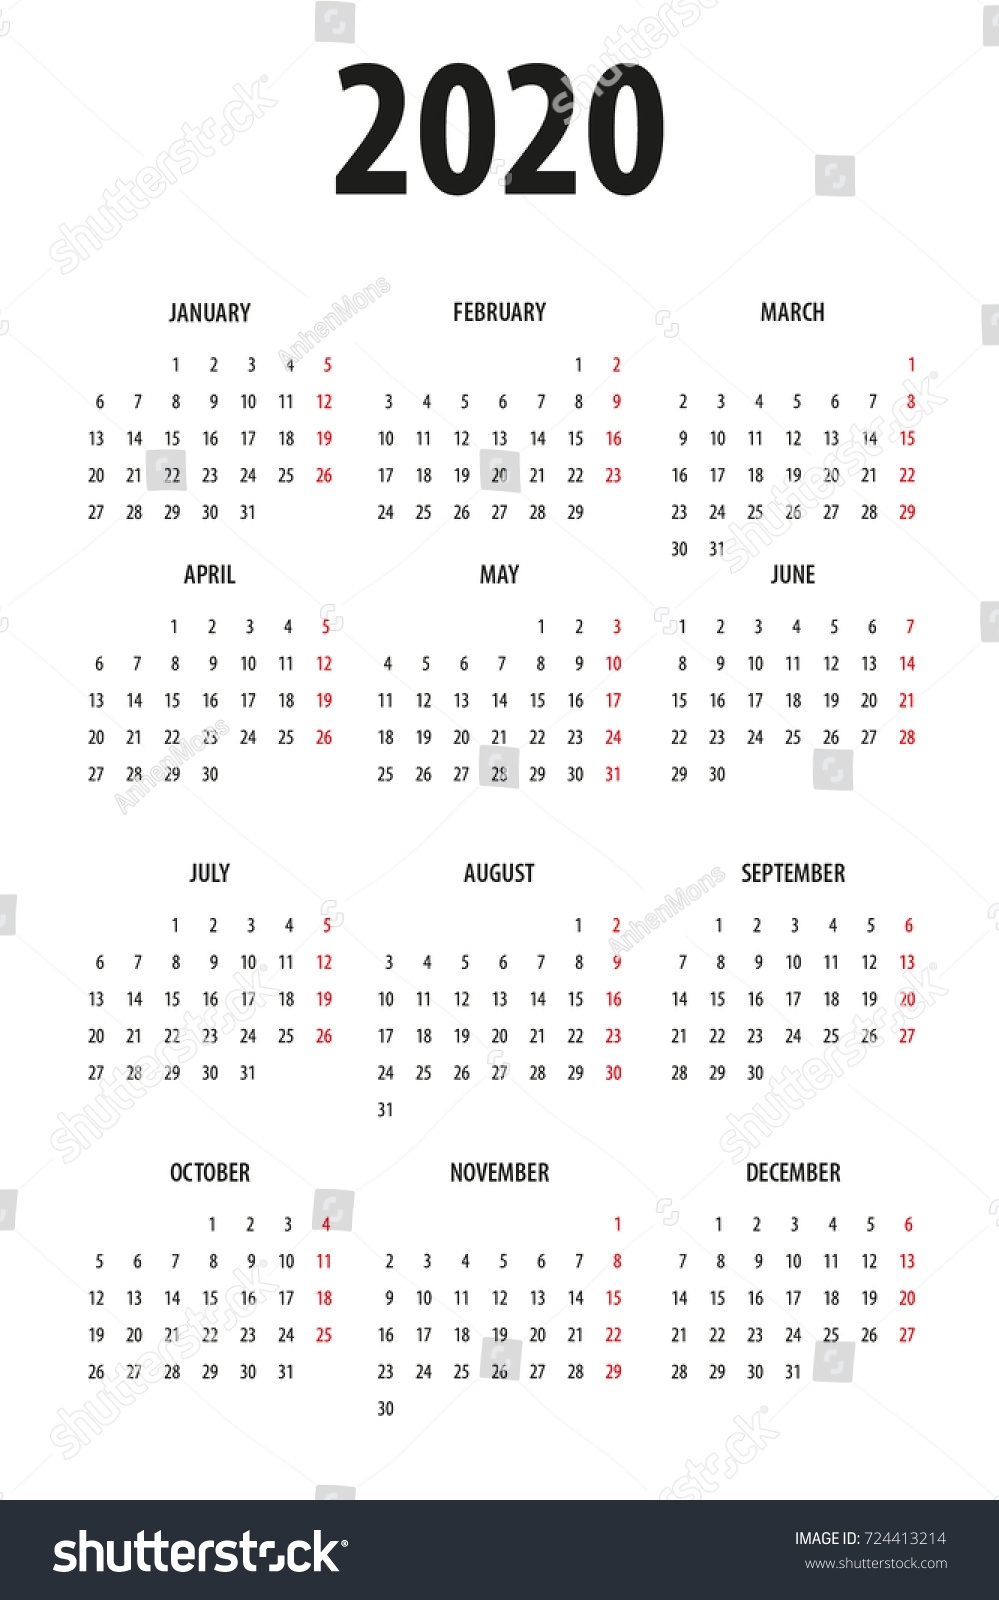 Simple Calendar Template 2020 On White Stock Vector (Royalty Free inside 2020 Calendar Starting With Monday